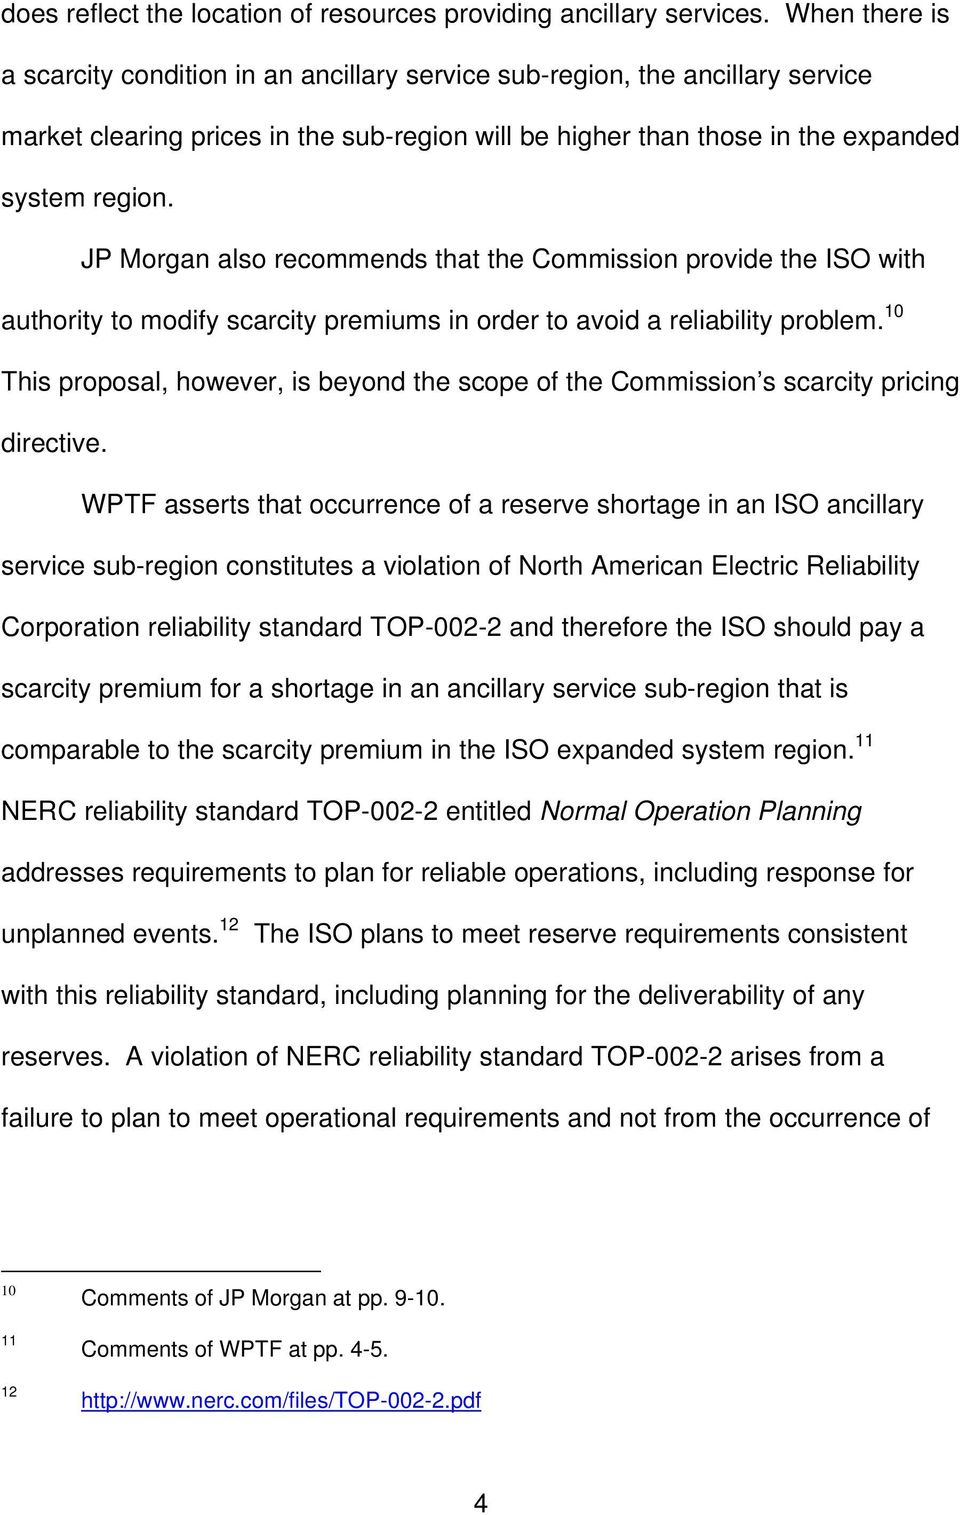 JP Morgan also recommends that the Commission provide the ISO with authority to modify scarcity premiums in order to avoid a reliability problem.